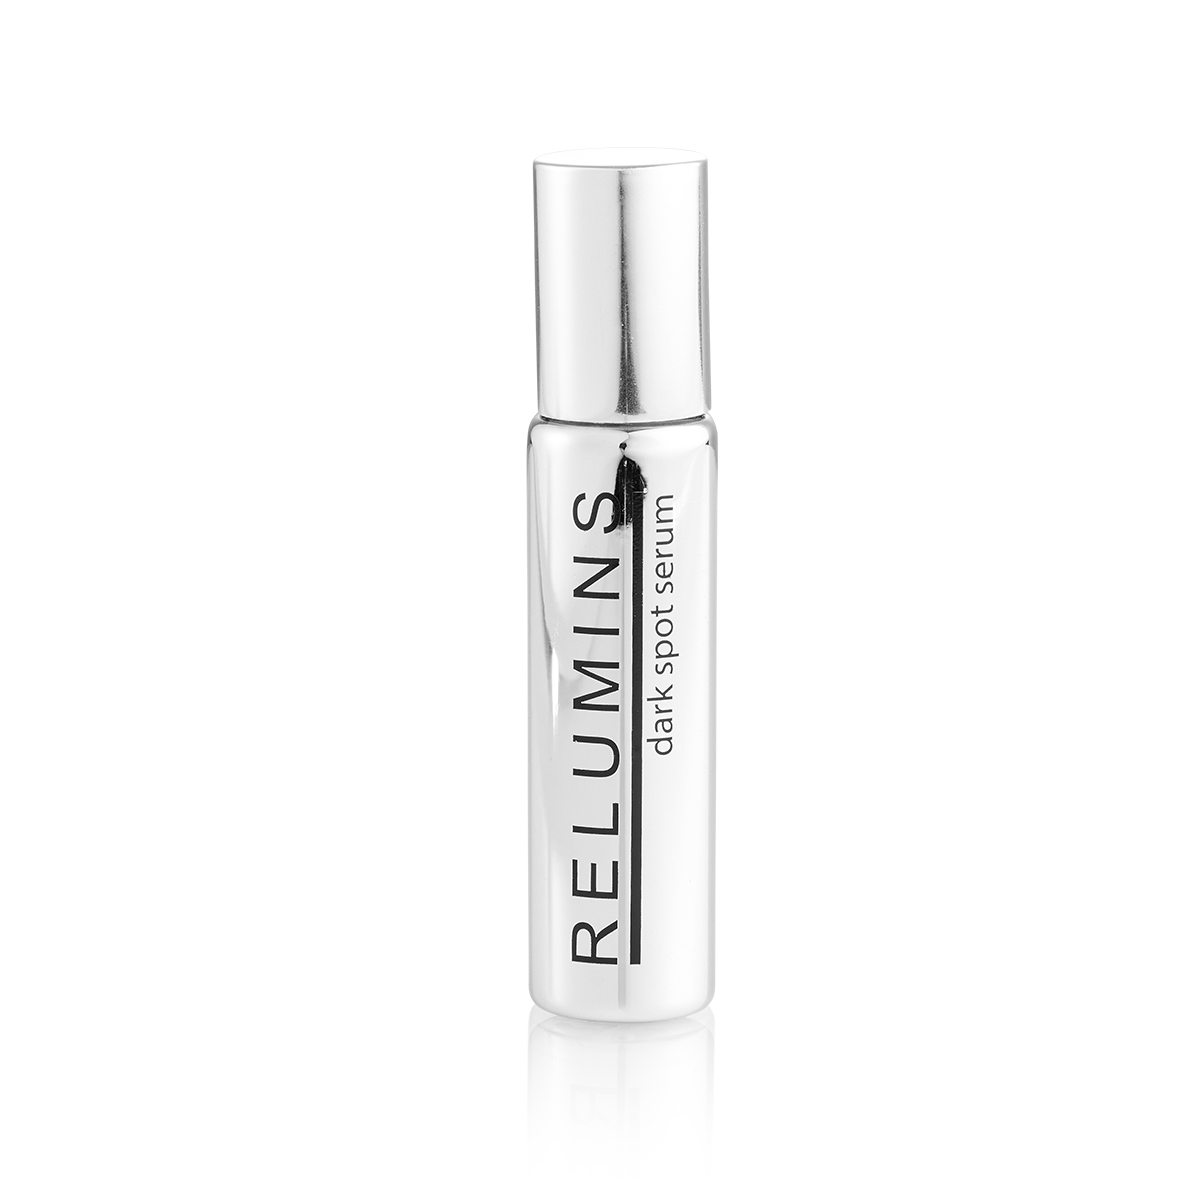 NEW! Relumins Advance White On-the-Go Dark Spot Treatment Serum!